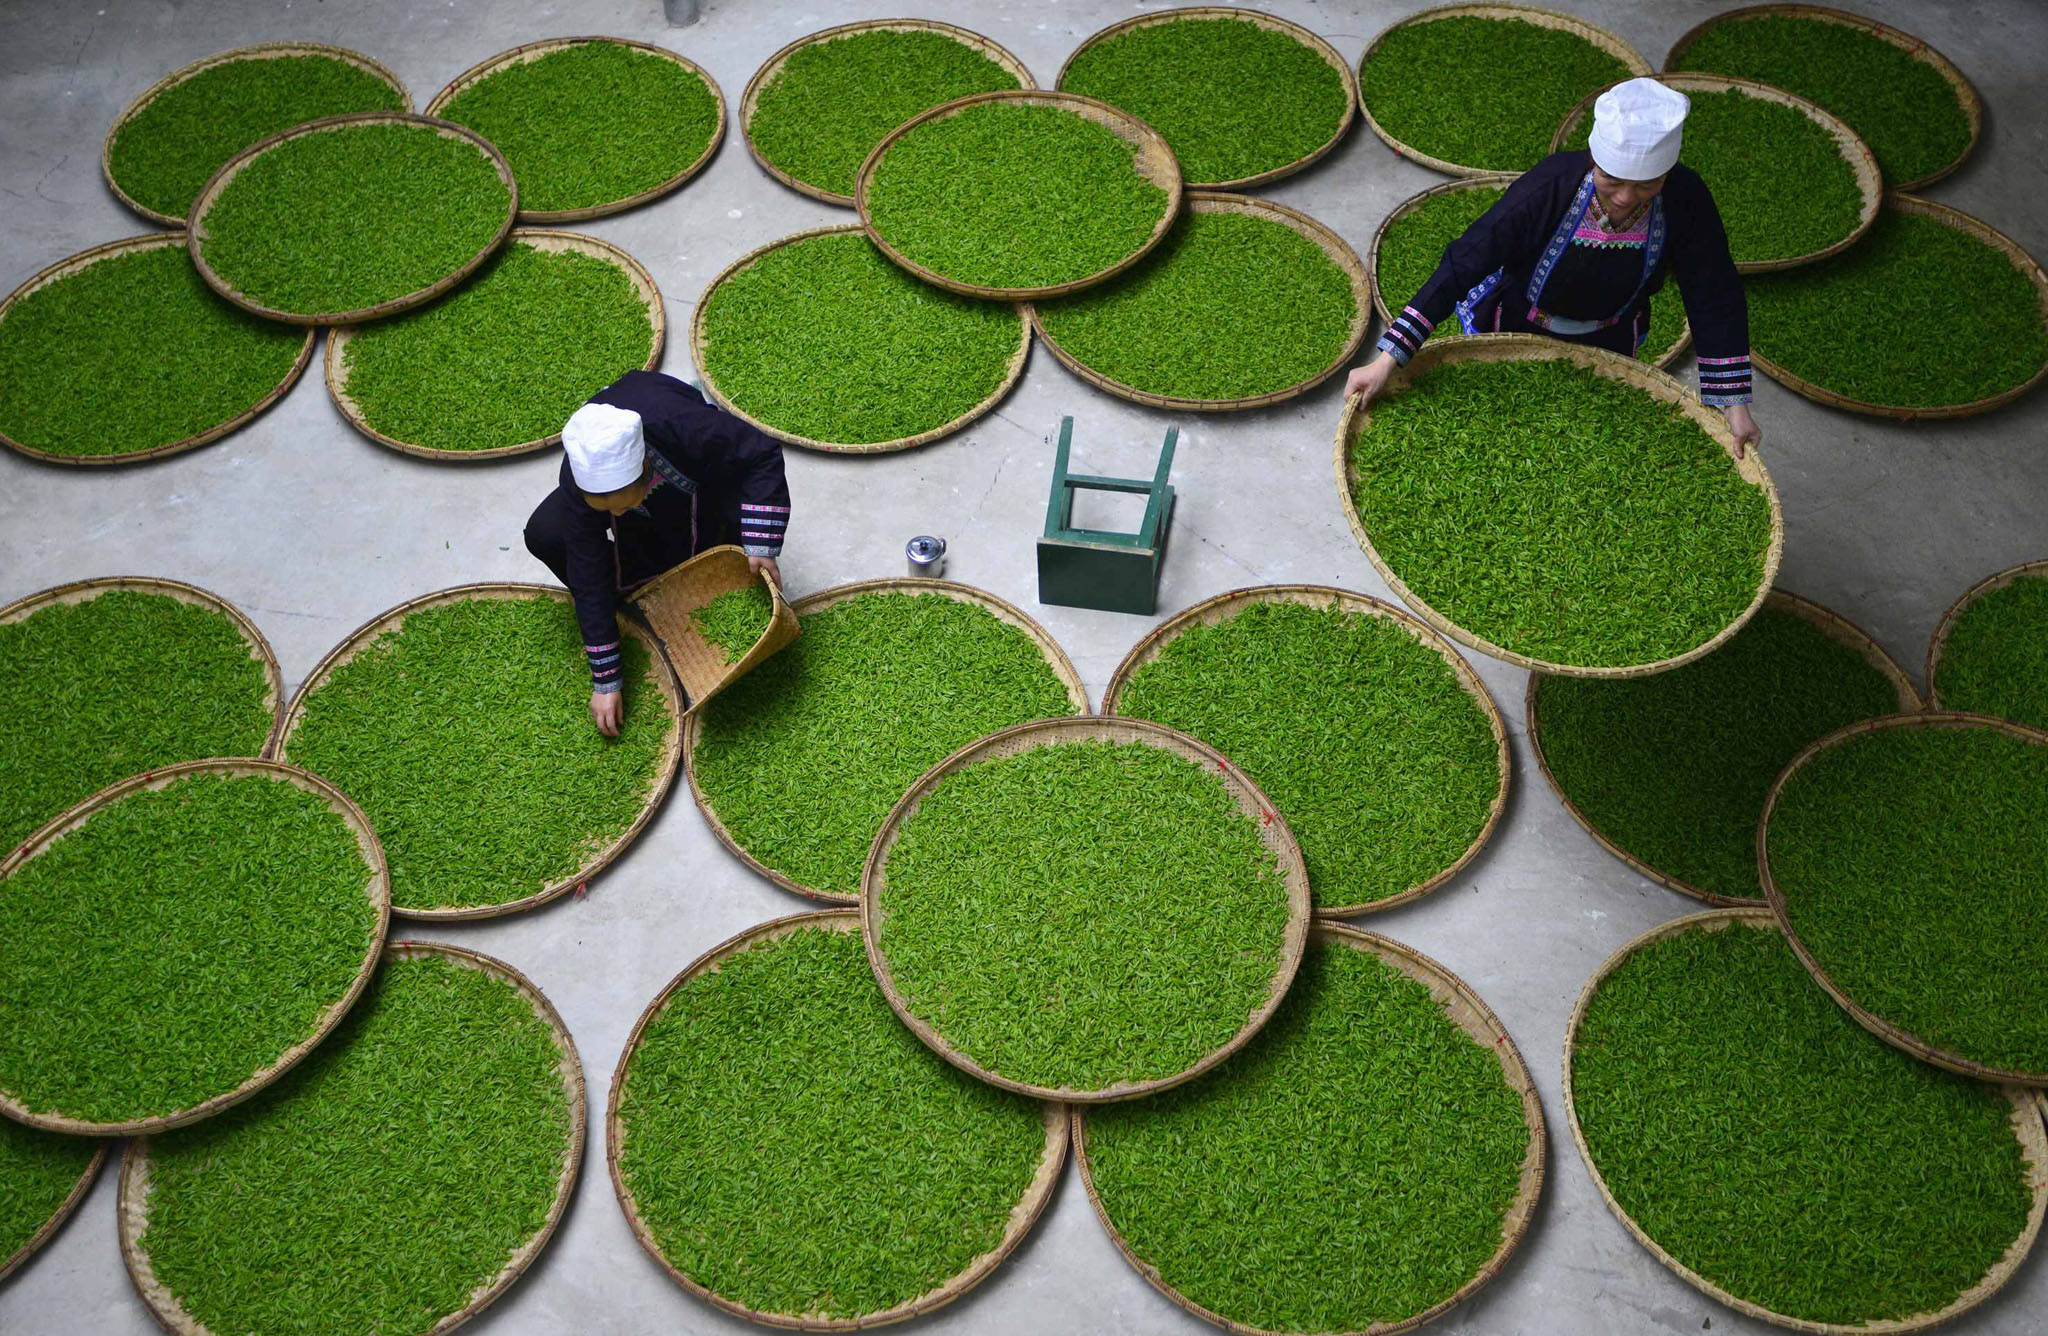 Ethnic Dong women work at a tea leaf processing factory in Liping county, Guizhou province, March 28, 2014. According to local media, Liping county's tea plantations attracted more than 60,000 women workers from nearby villages this spring and each tea picker earns around 100 yuan ($16.10) per diem.